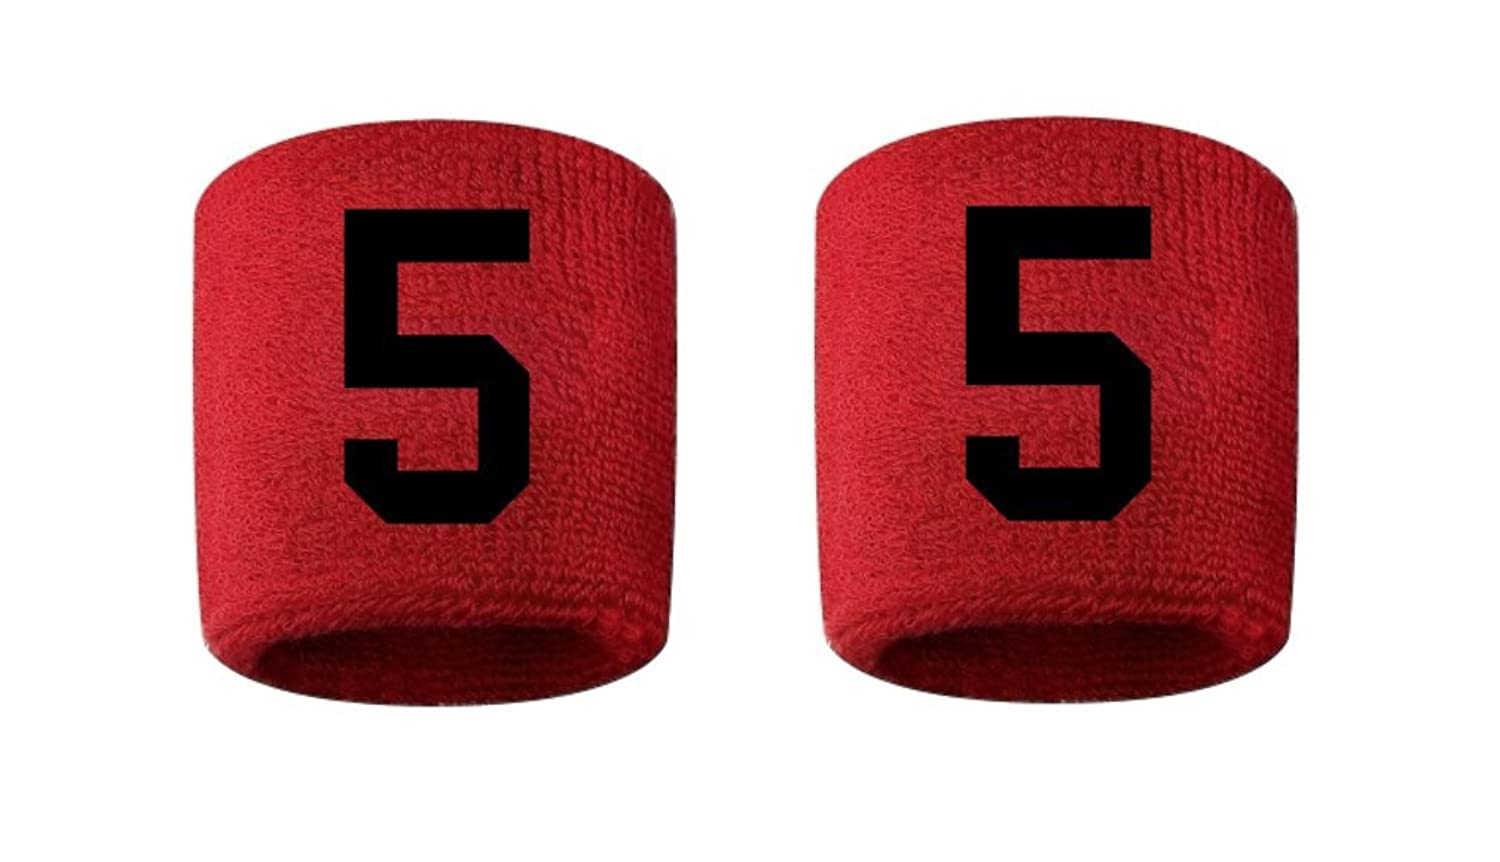 #5 Embroidered/Stitched Sweatband Wristband RED Sweat Band w/ BLACK Number (2 Pack)